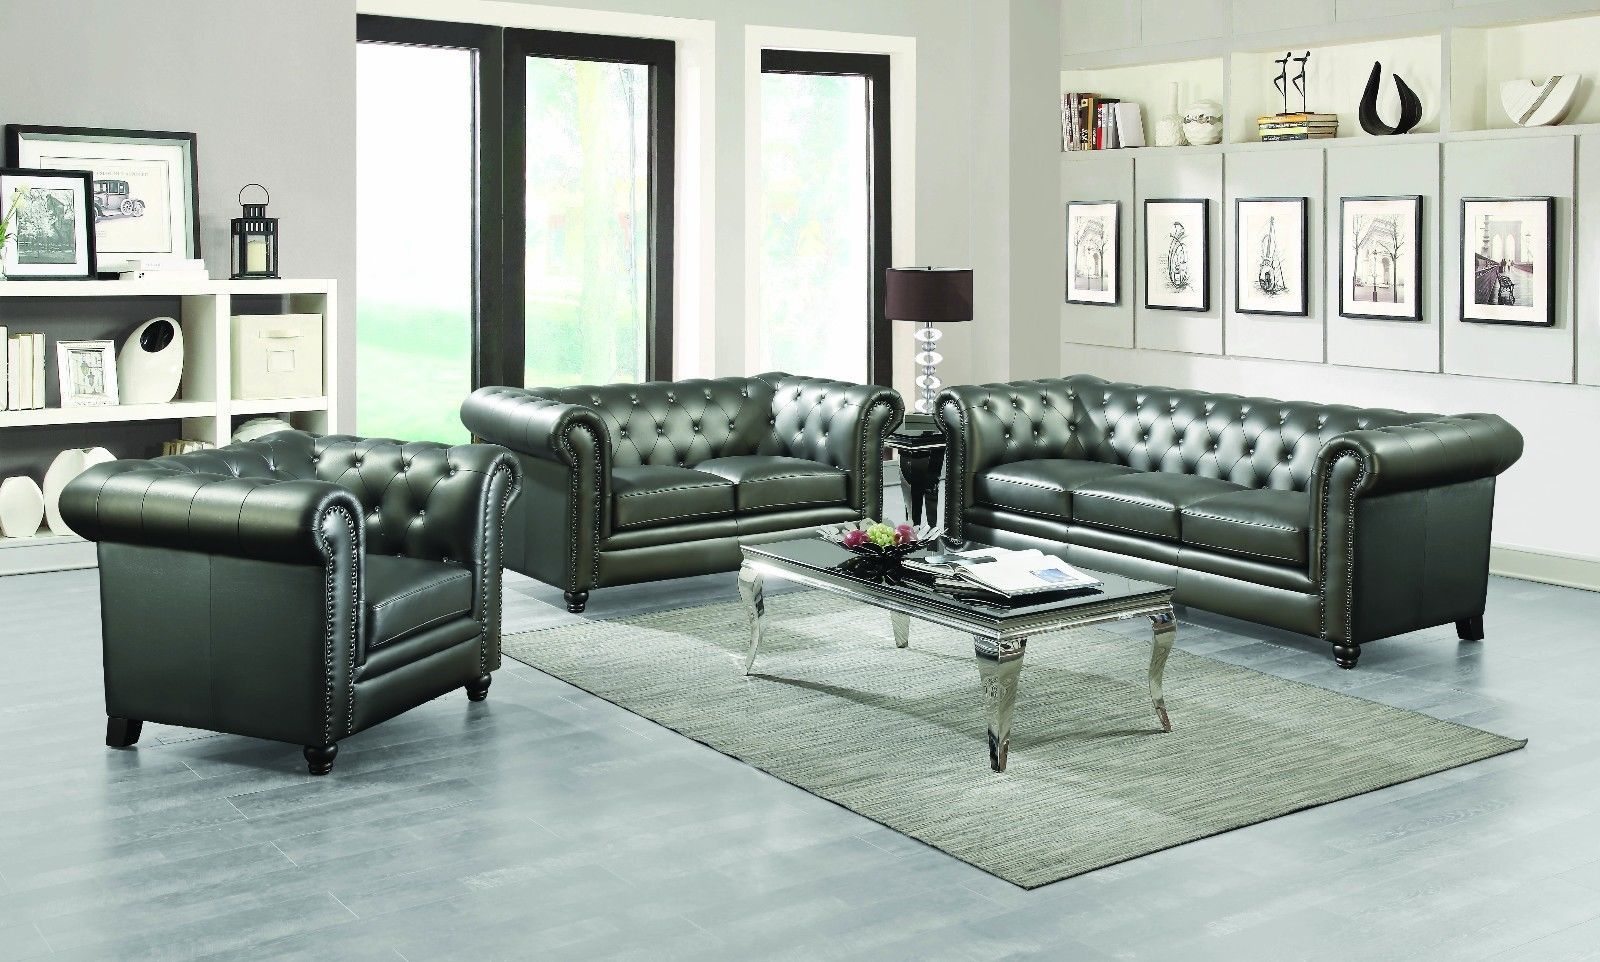 Traditional button tufted gun metal leatherette sofa u love seat